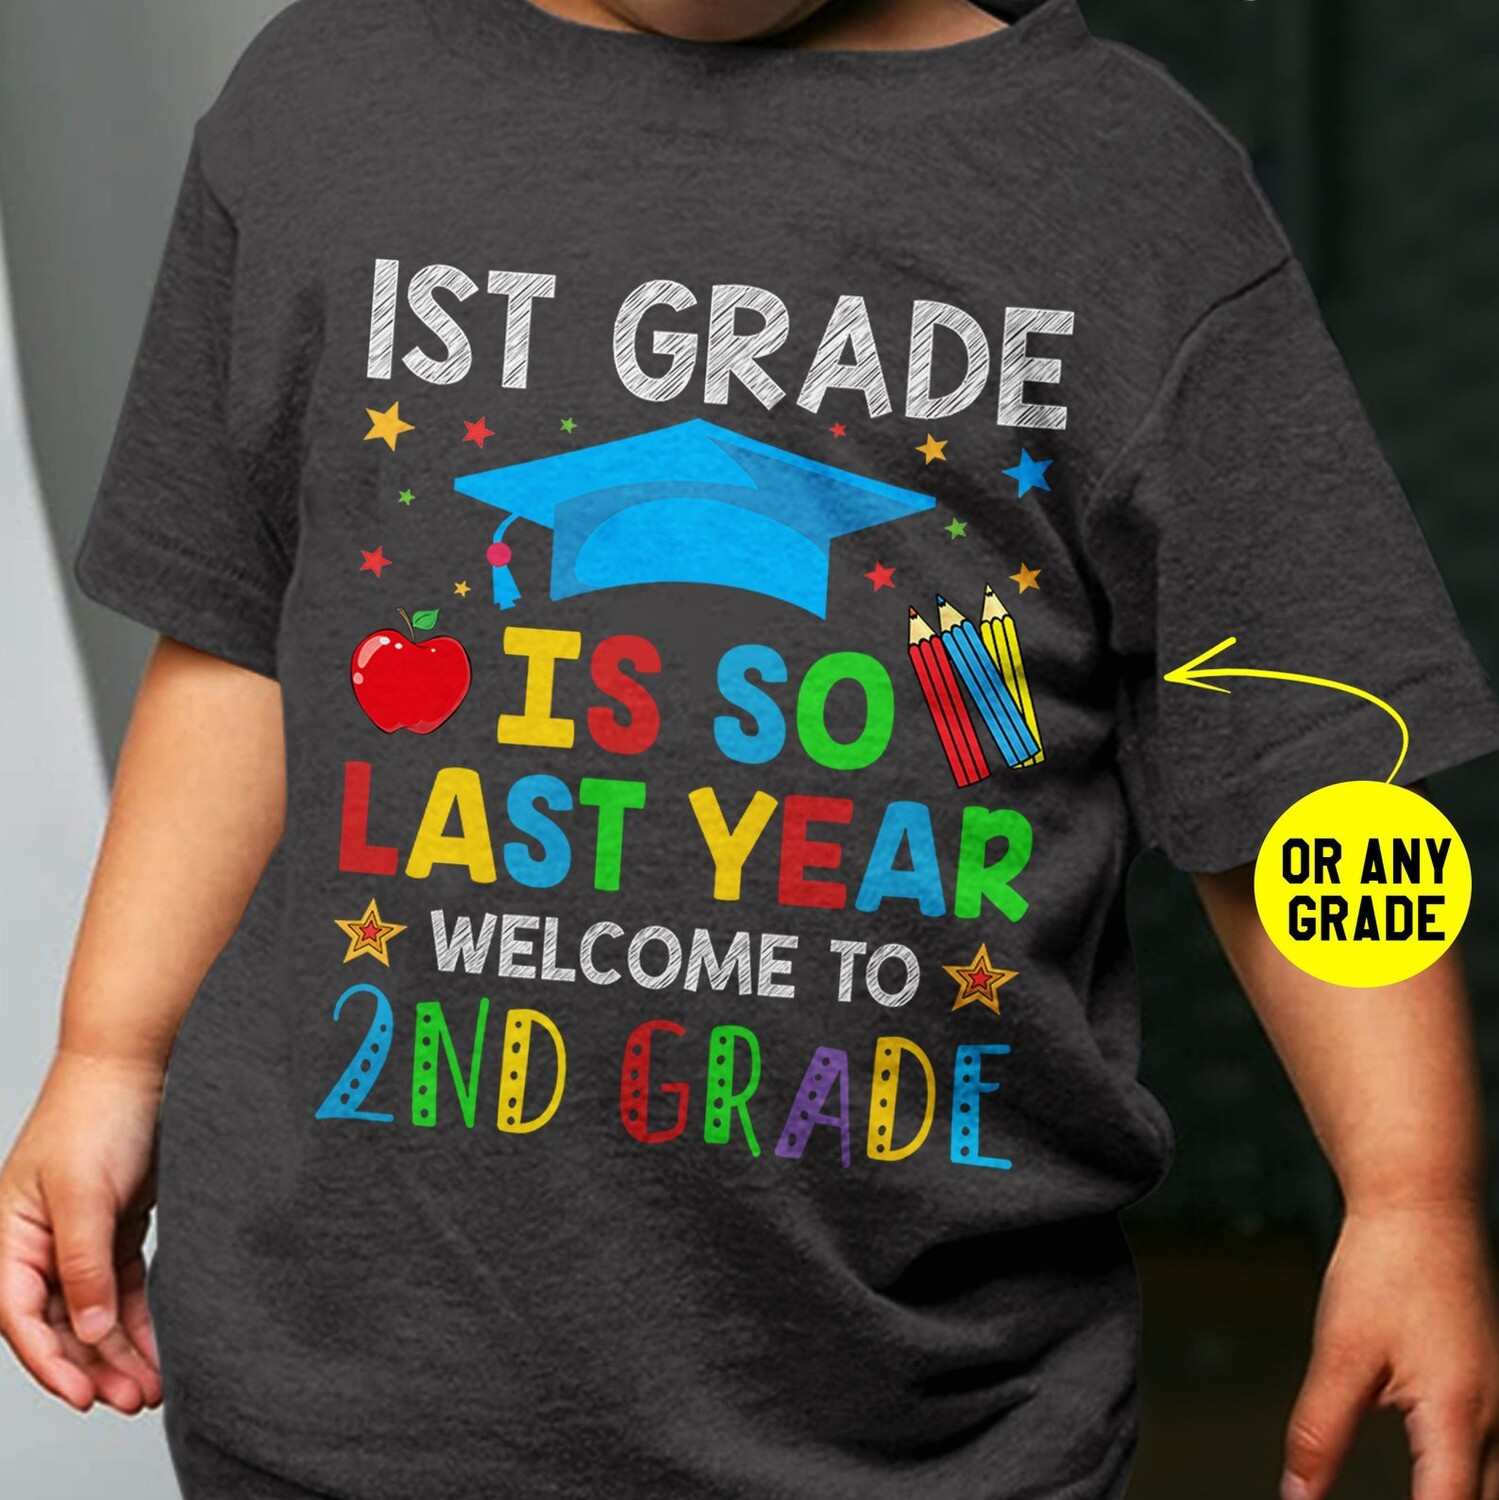 1st Grade is So Last Year Welcome To 2nd Grade Kids Funny Back To School Tshirt First Day Of School Rocking Tee Outfit Gift For Boys Girls